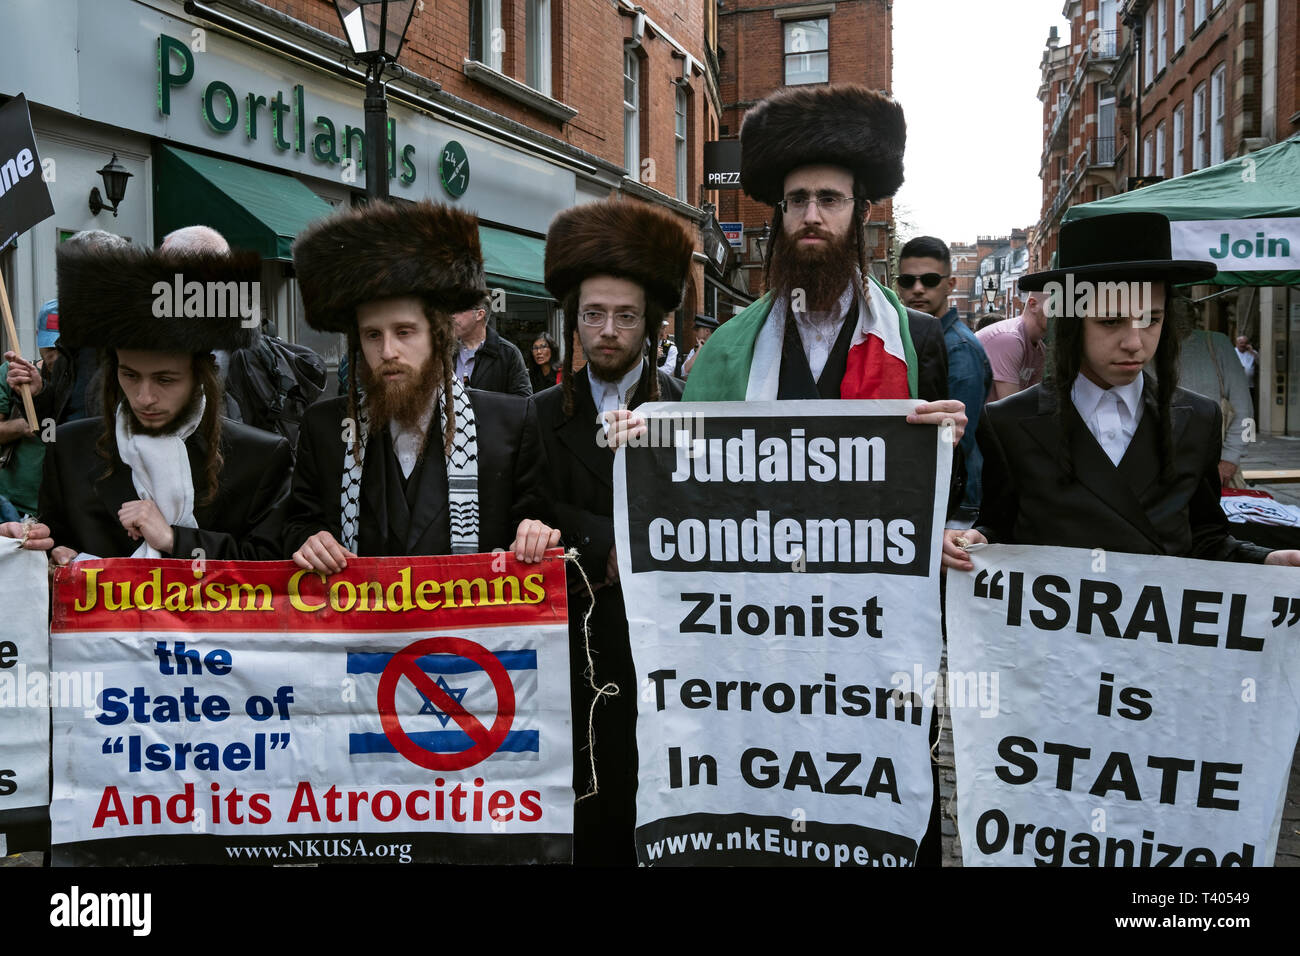 Anti Zionist Orthodox Jews at rally for Palestine outside the Israeli Embassy: Exist,Resist, Return. A global call for solidarity on the 1st anniversary of the start of the Great Return March. - Stock Image